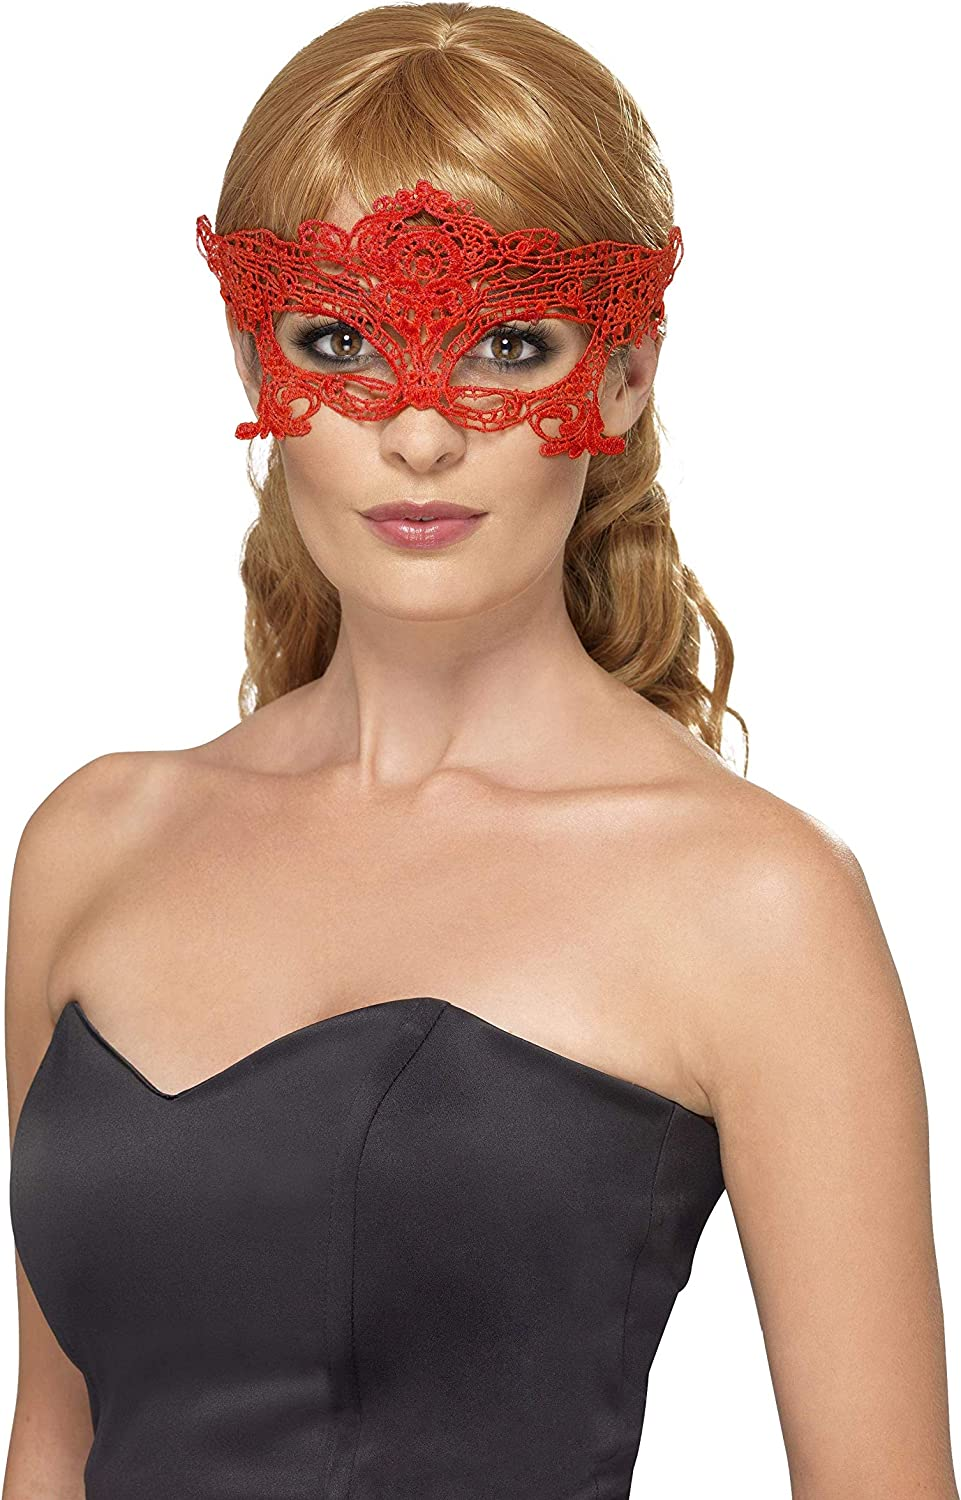 Embroidered Lace Filigree Heart Eyemask Ladies Masquerade Fancy Dress Mask